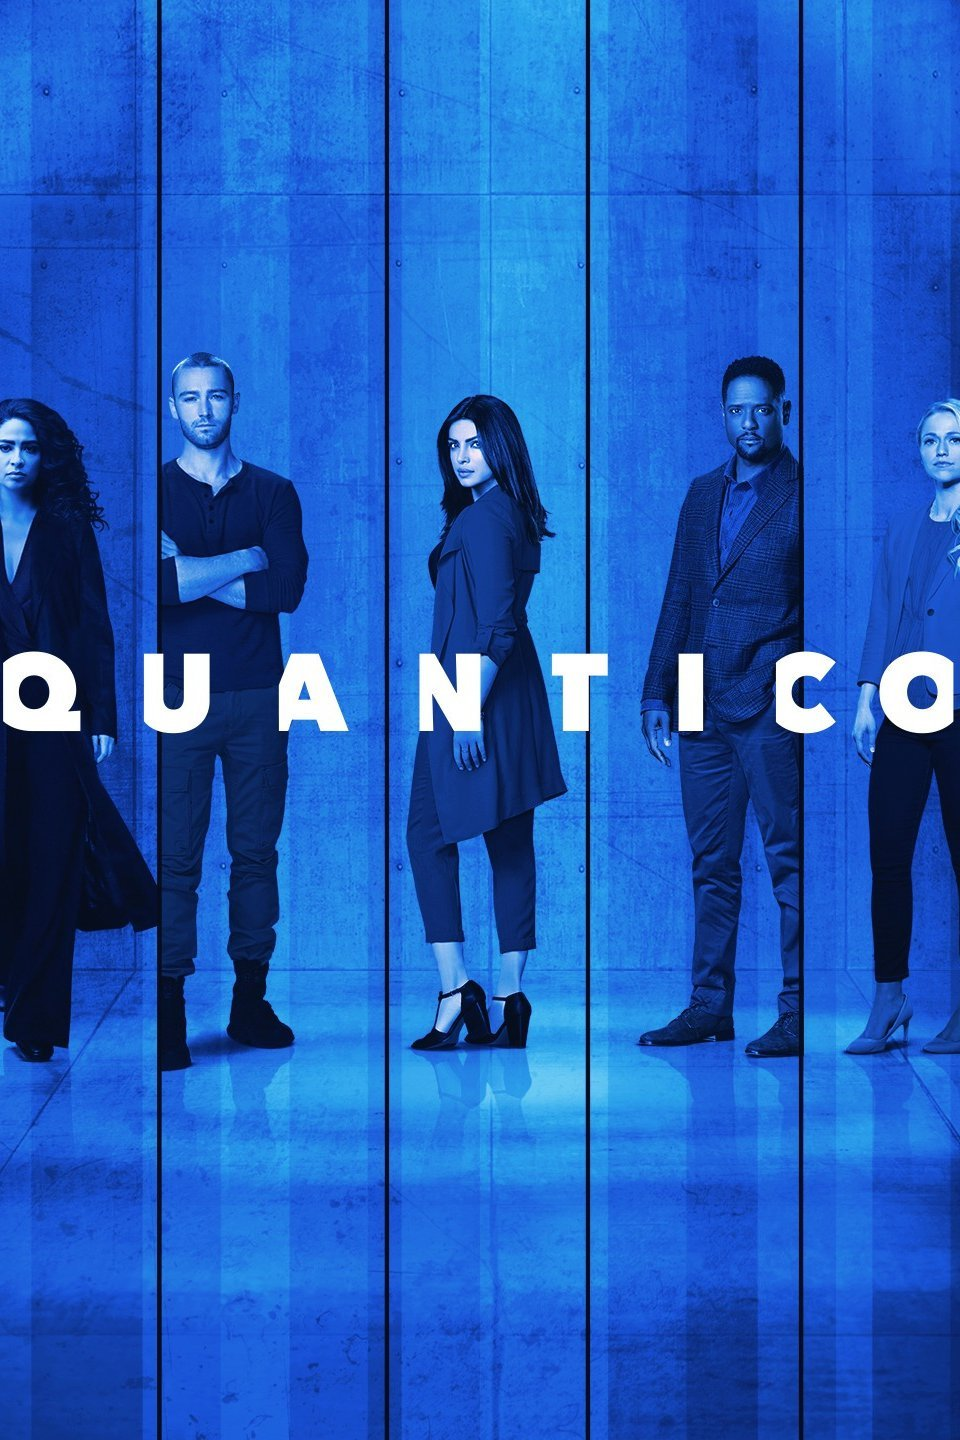 Quantico Tv Series Download Season 2 Complete 480p WEBRip